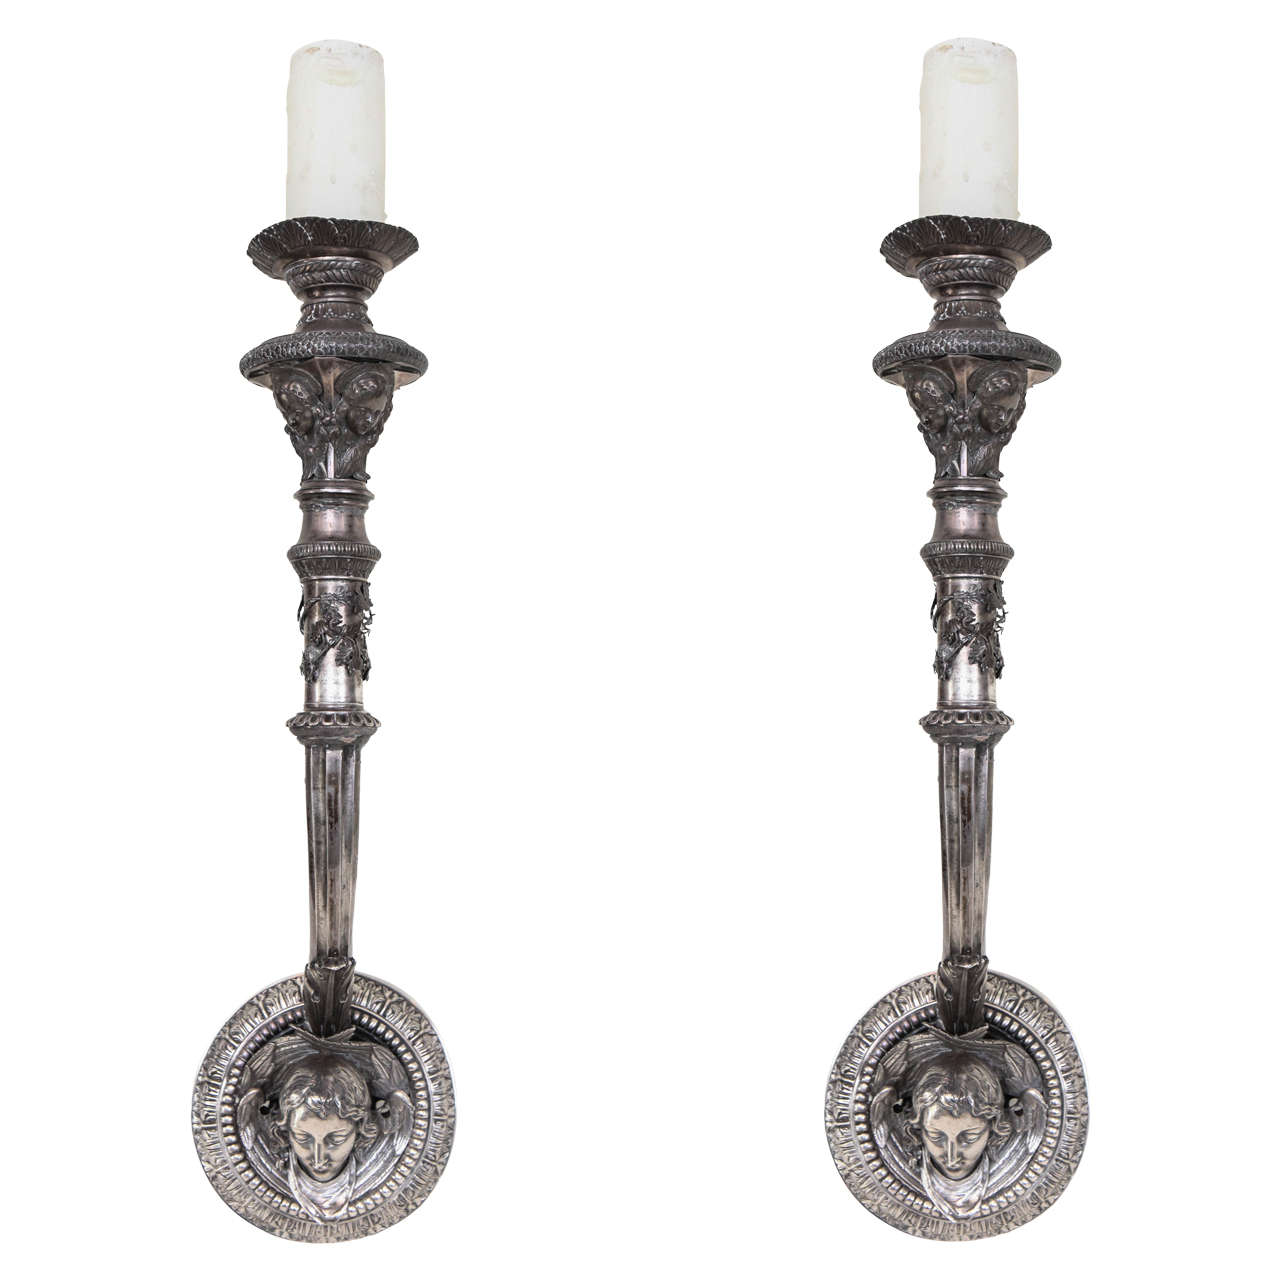 Pair of French Silvered Bronze Arm Sconces